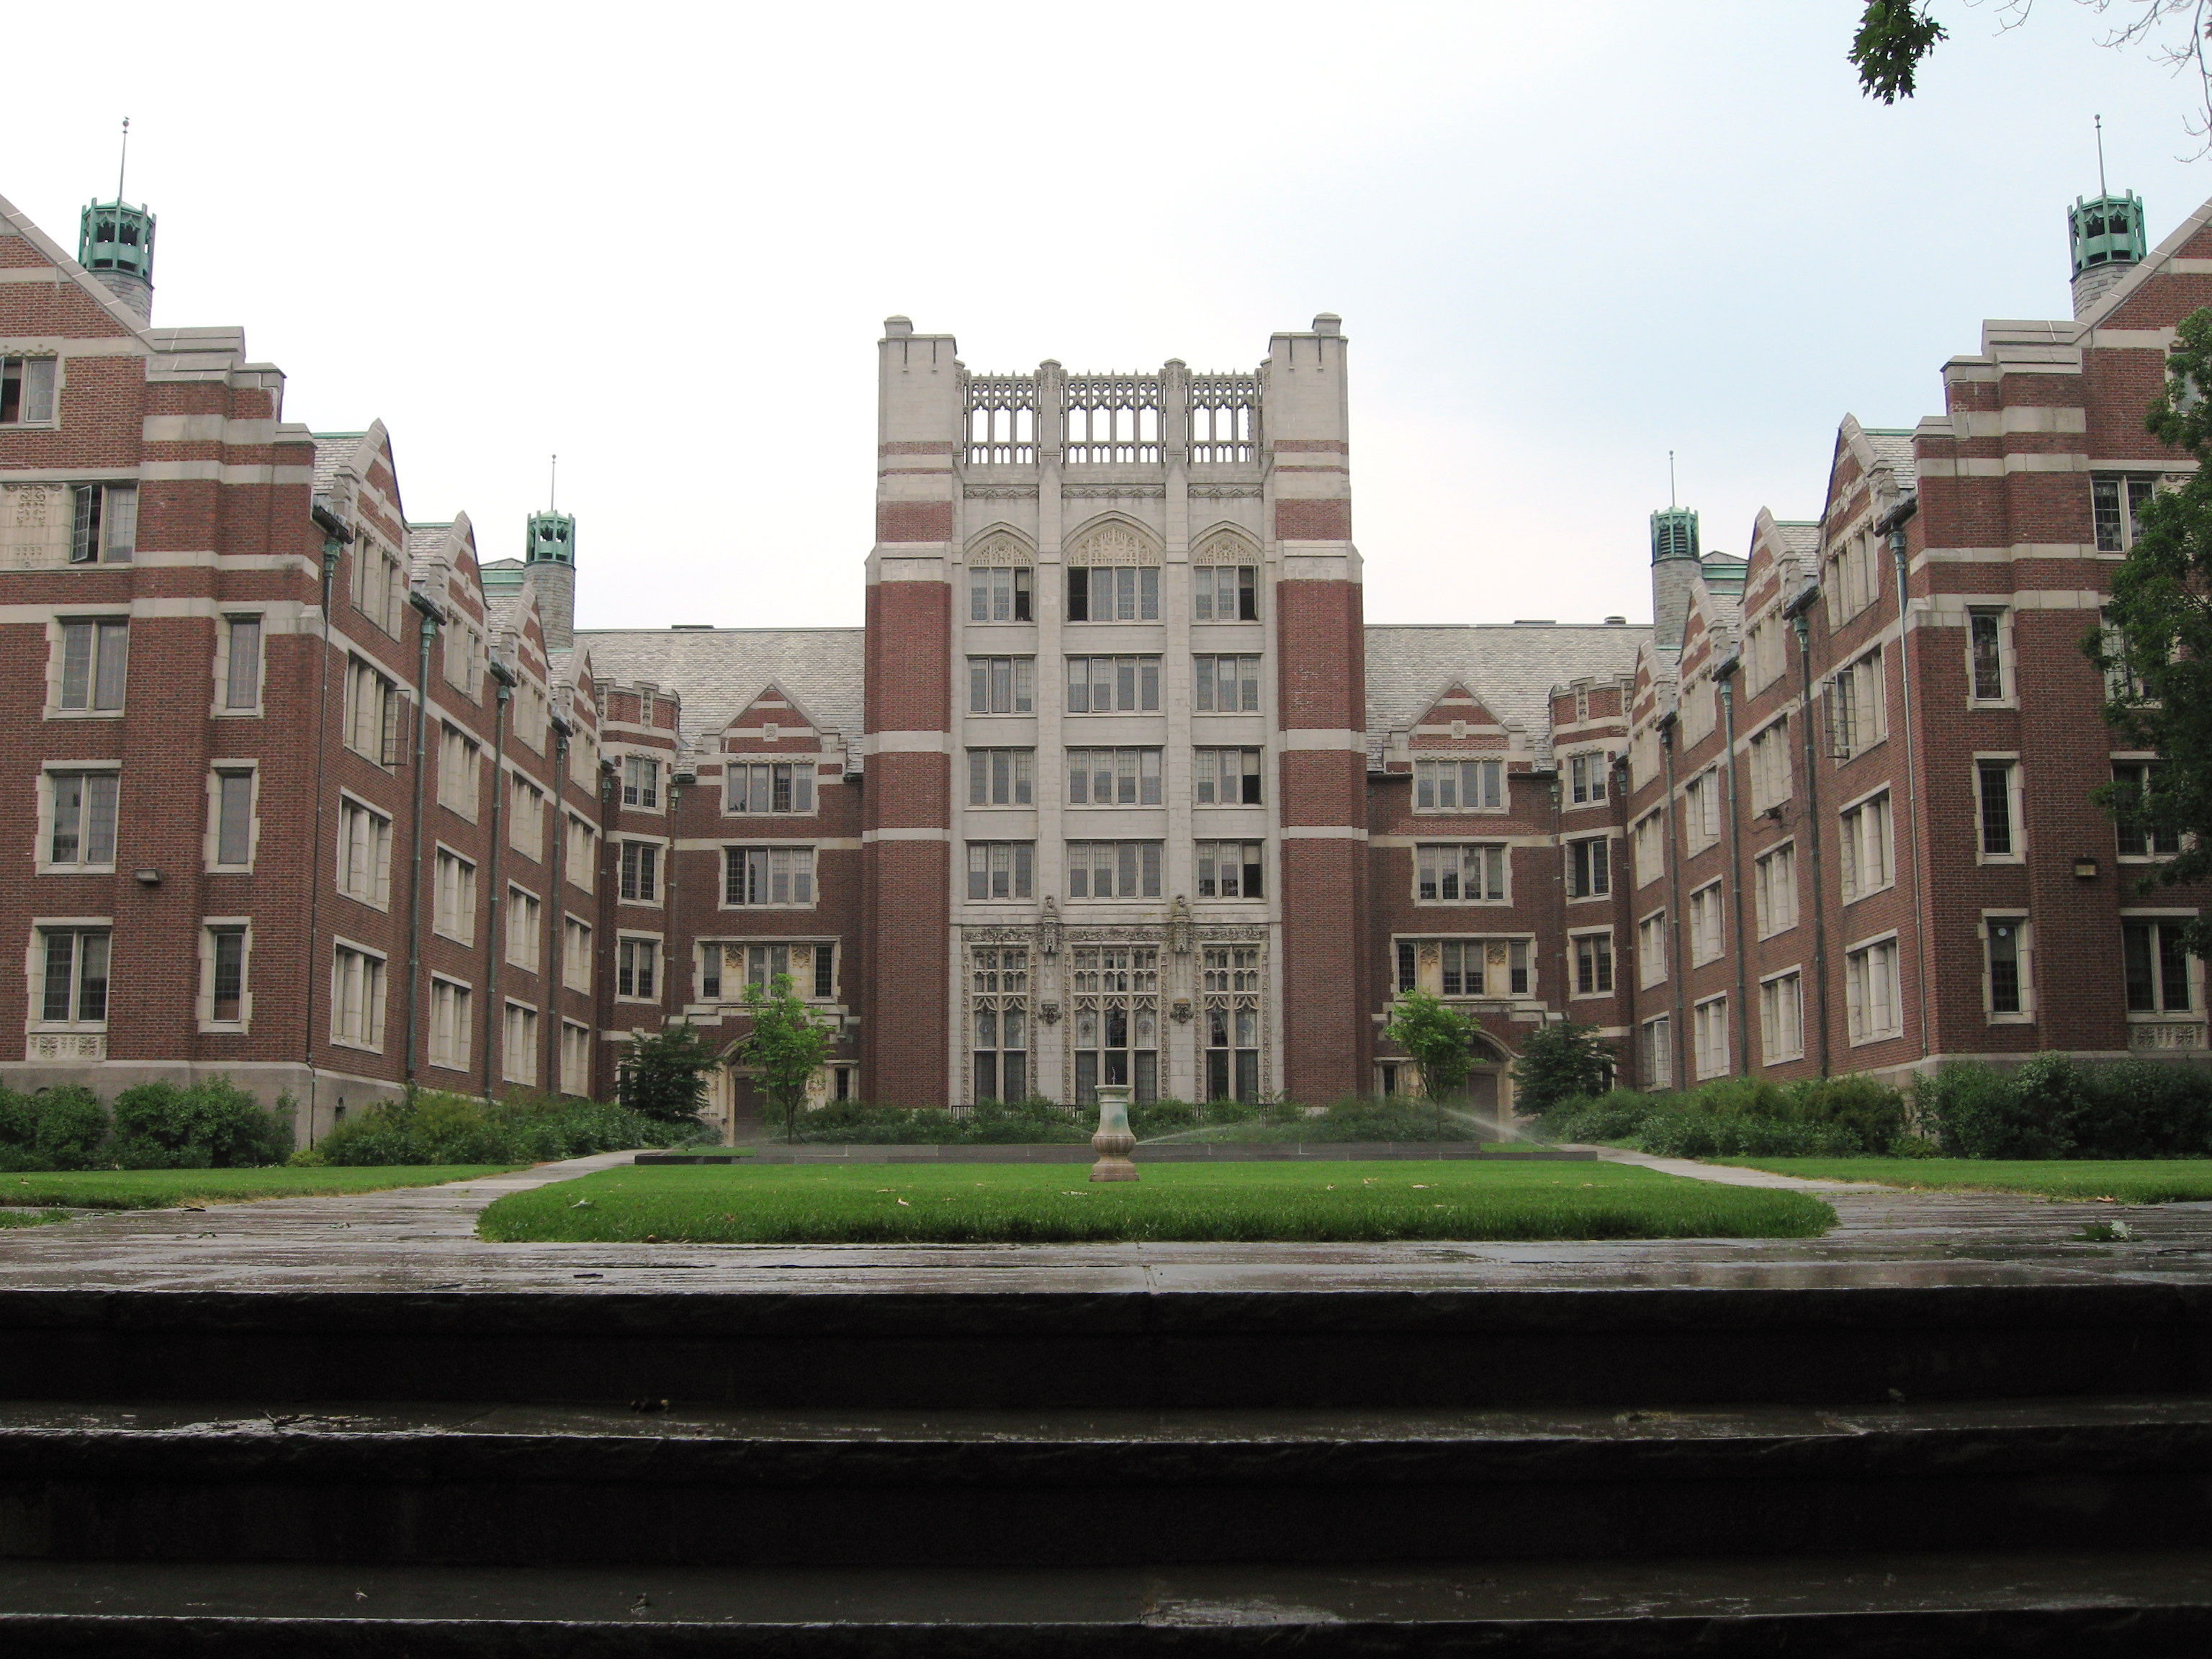 Wellesley_College_Tower_Court.jpg